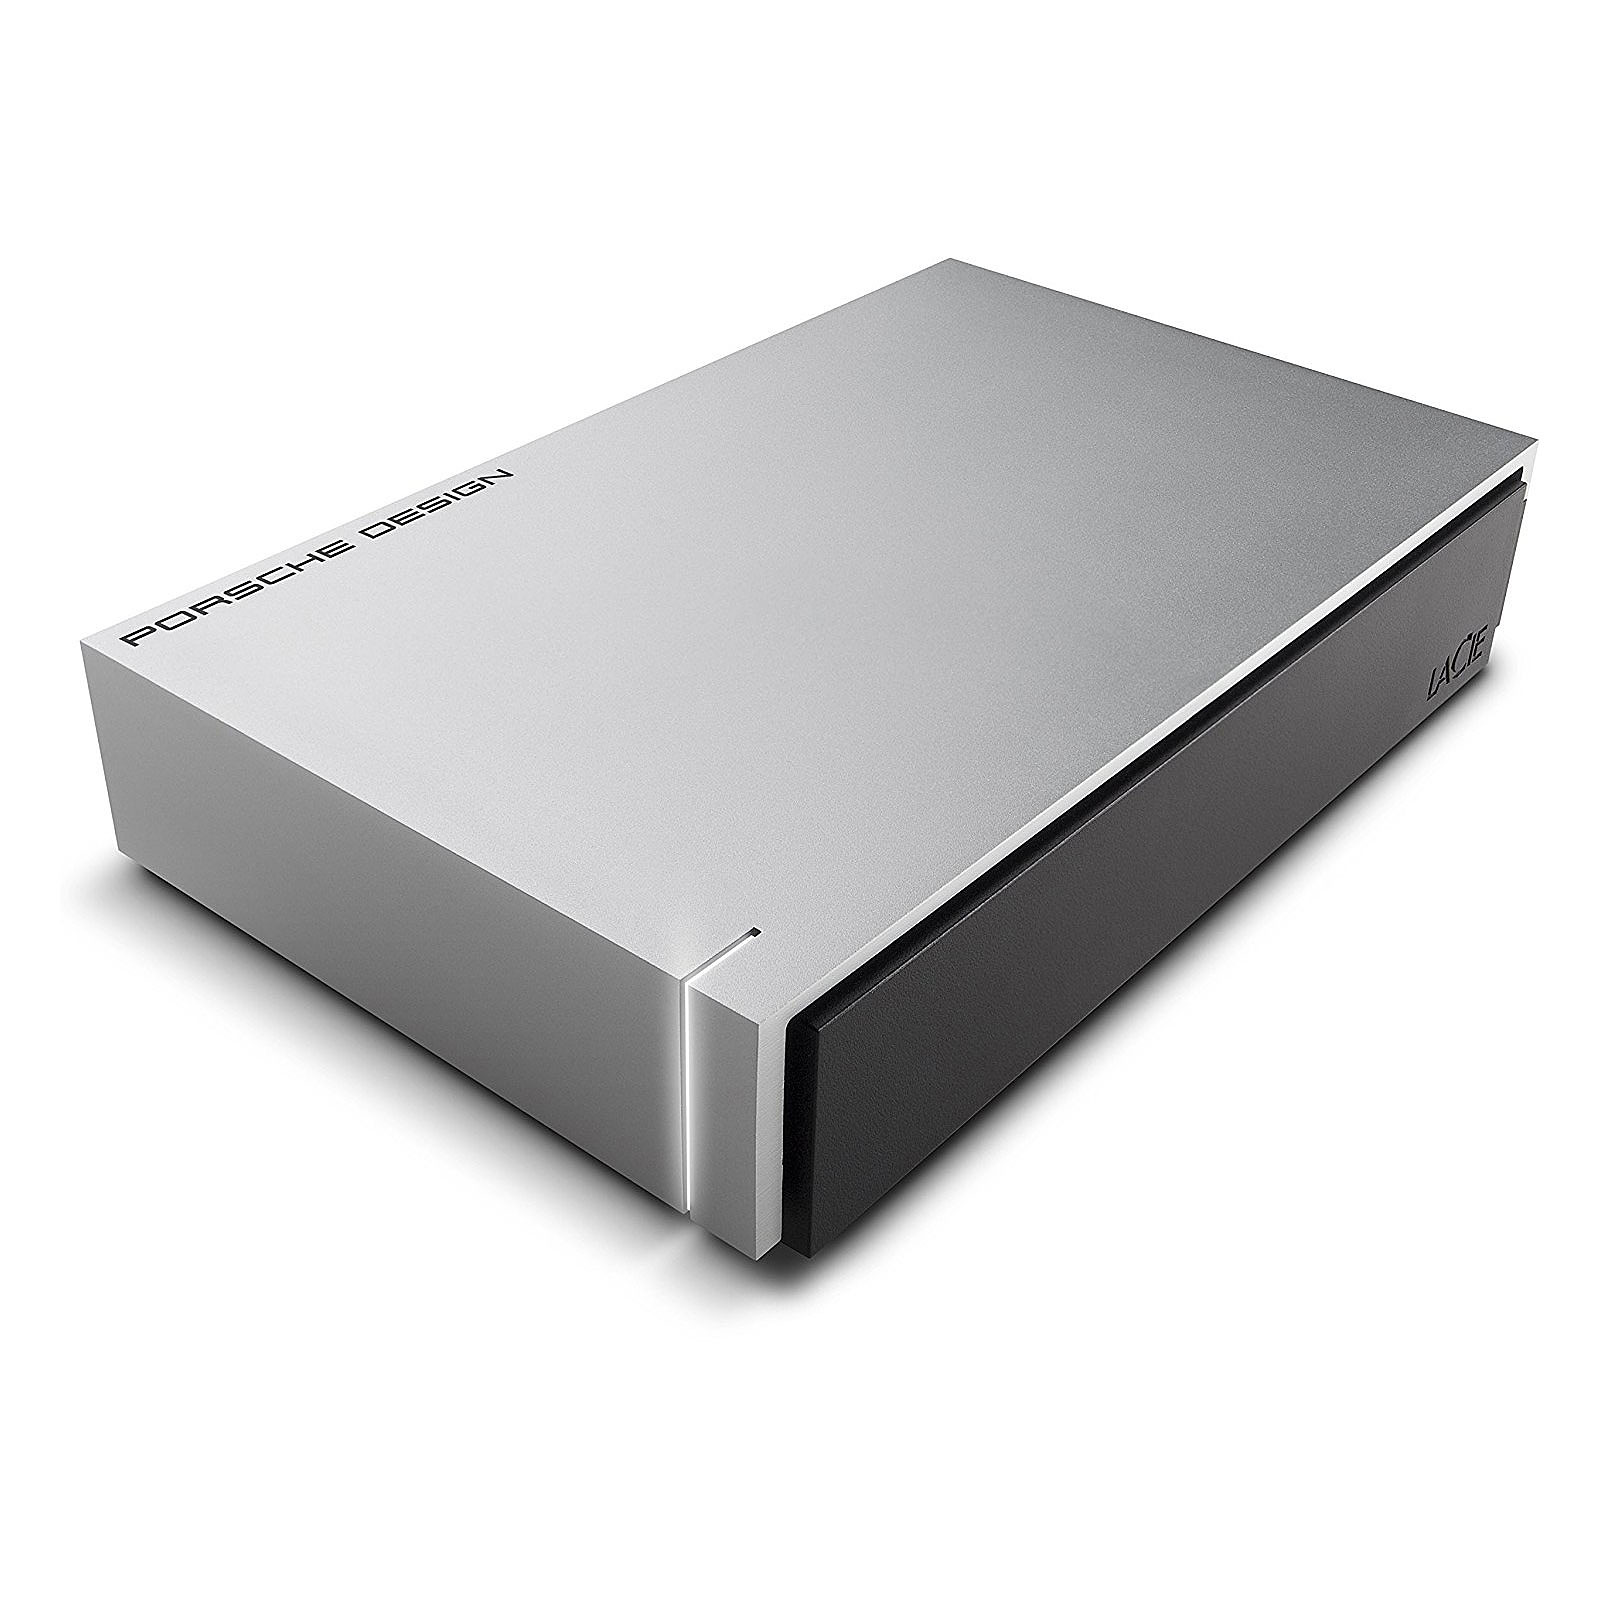 LaCie Porsche Design Desktop Drive 4 To (USB 3.0)